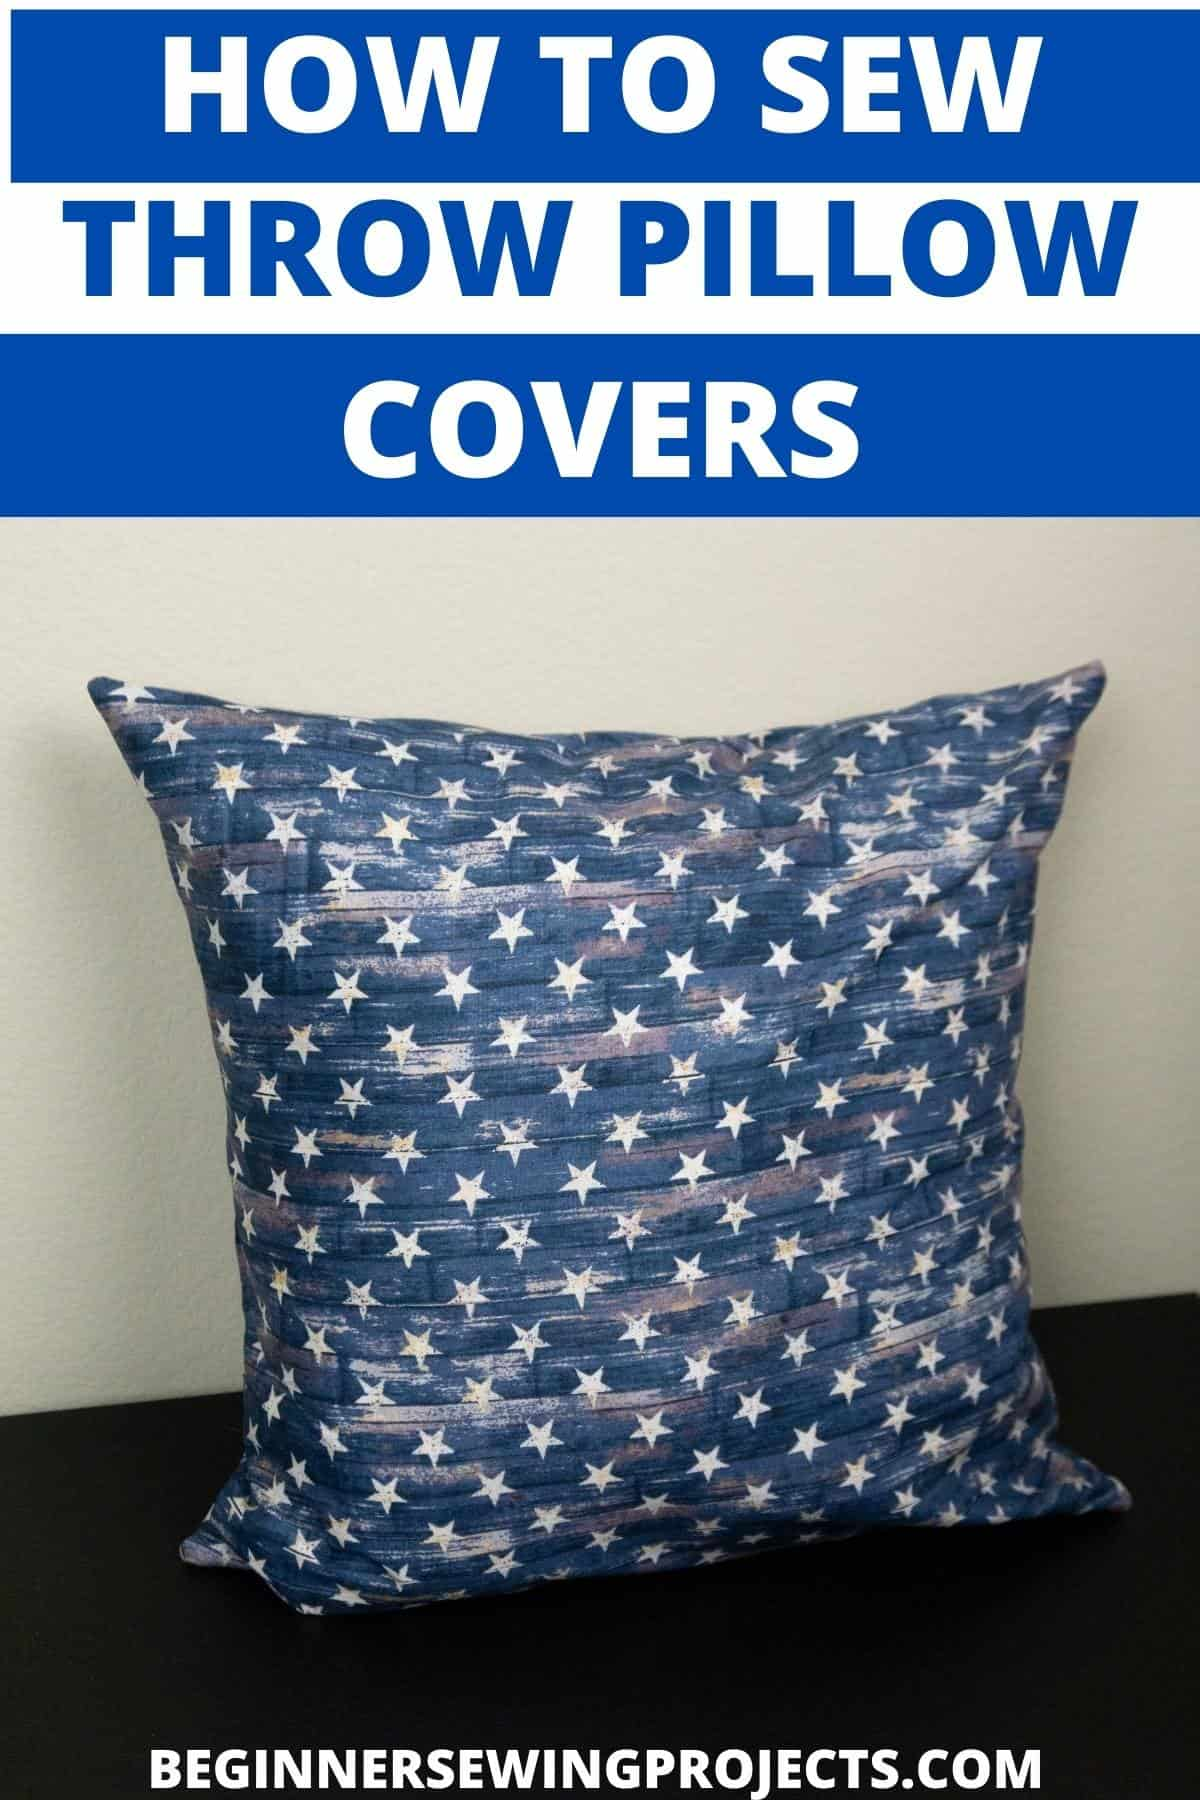 How to Sew Throw Pillow Covers